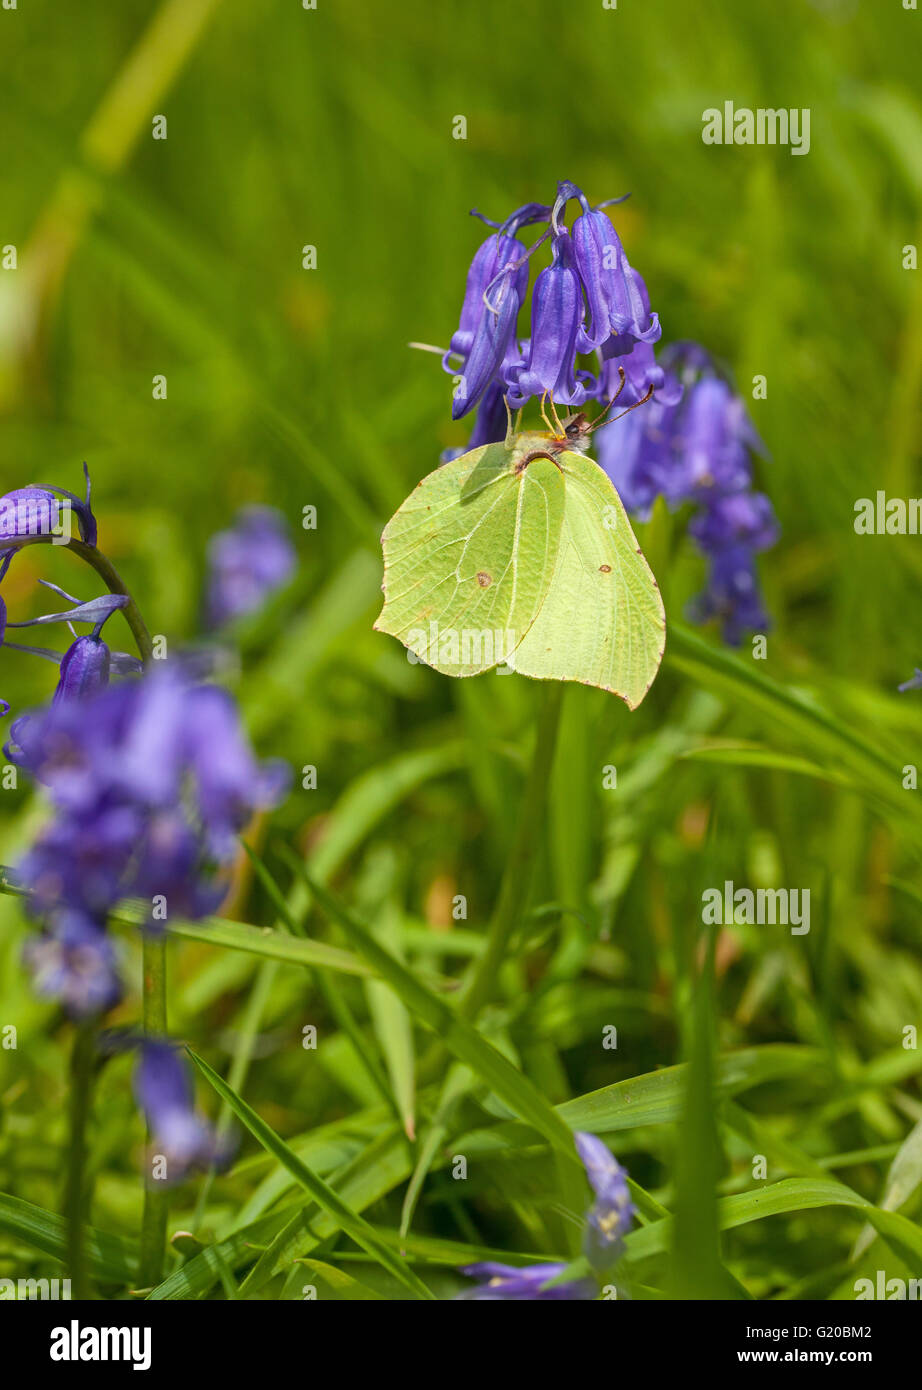 Brimstone butterfly Gonepteryx rhamni on Blue bell  flower head in the English countryside England UK after spending the winter in hibernation Stock Photo